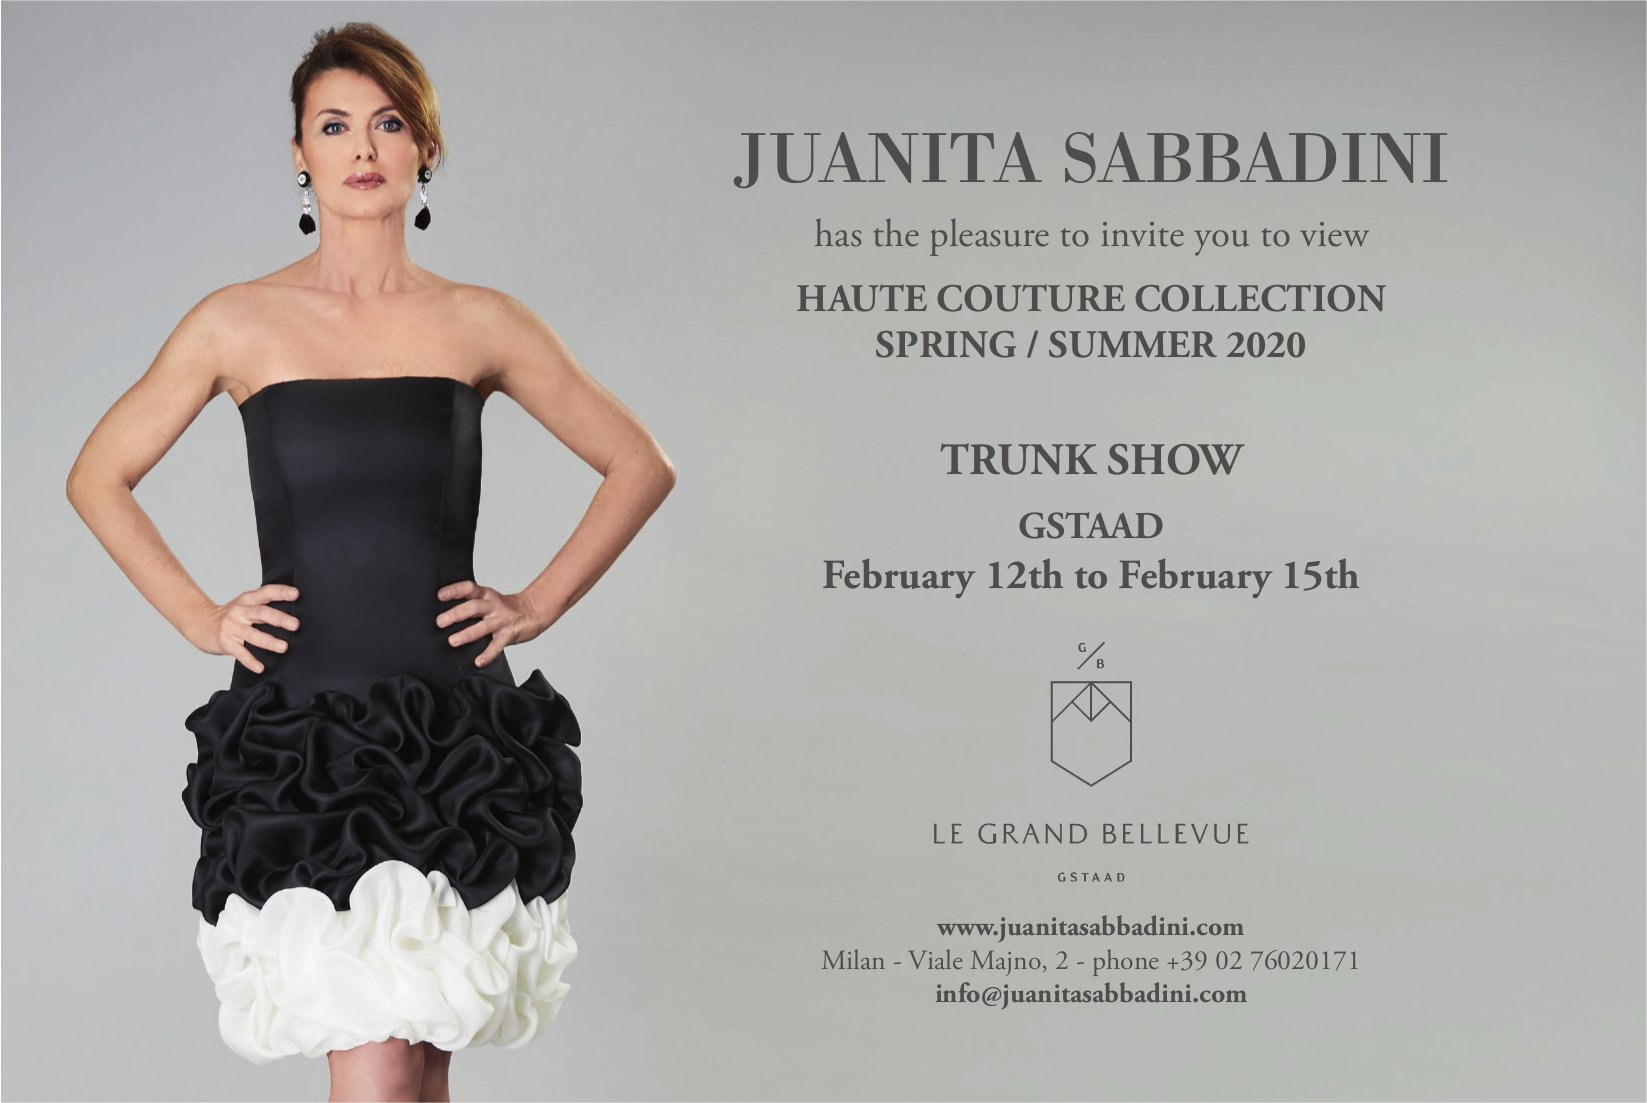 TRUNK SHOW,  HAUTE COUTURE COLLECTION SPRING/SUMMER 2020, ab 12. Februar, LE GRAND BELLEVUE, GSTAAD